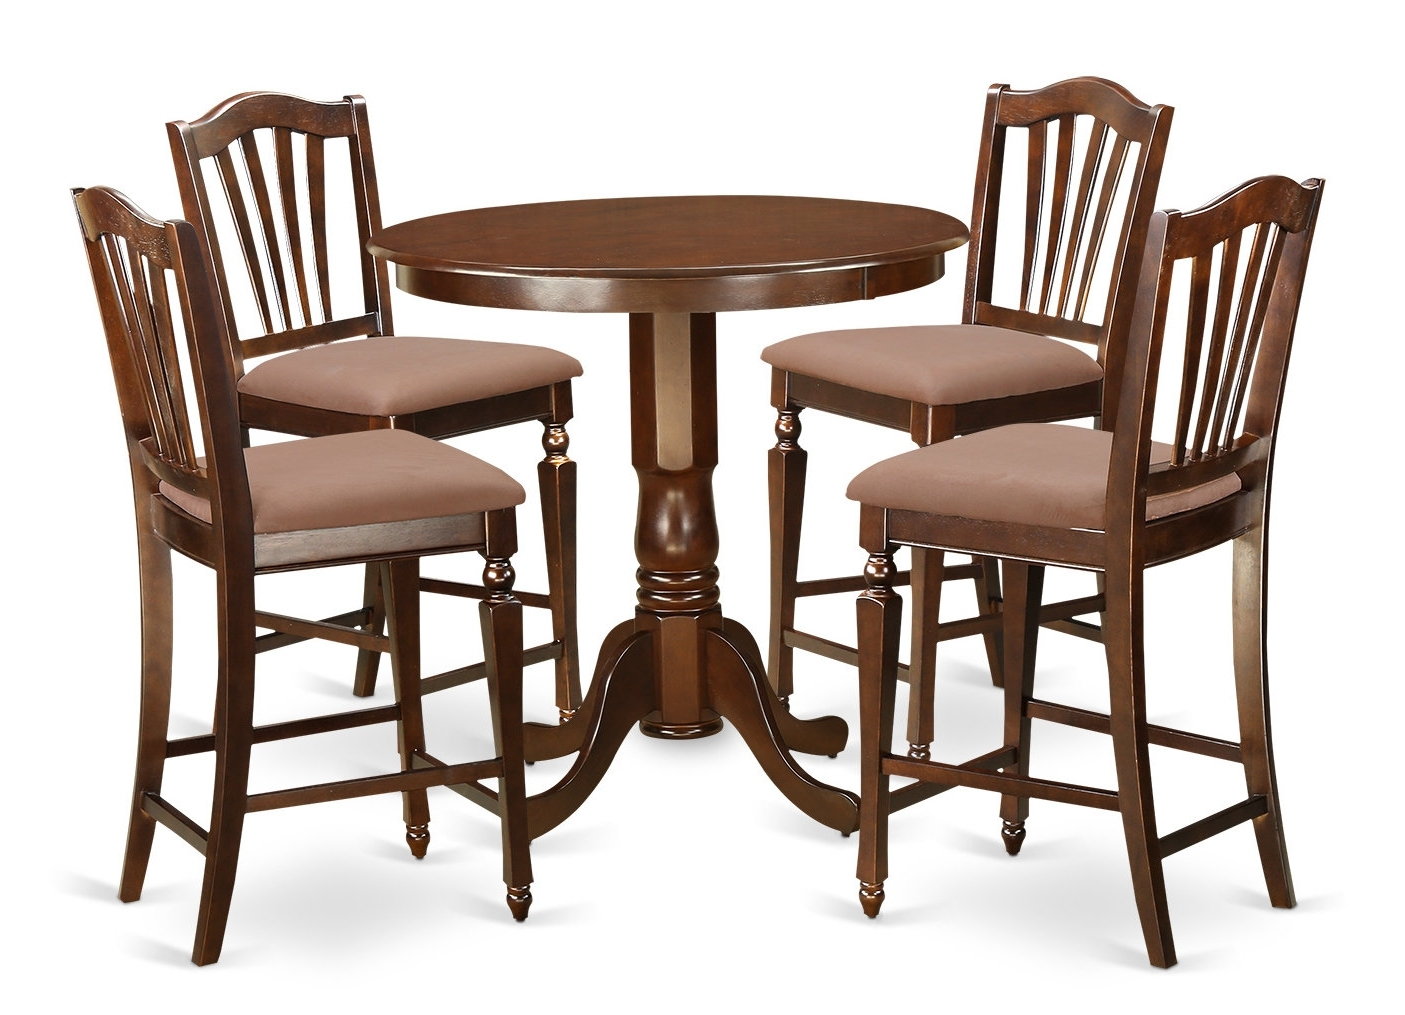 Newest Jaxon Grey 6 Piece Rectangle Extension Dining Sets With Bench & Wood Chairs Regarding East West Jackson 5 Piece Counter Height Pub Table Set (Gallery 14 of 25)